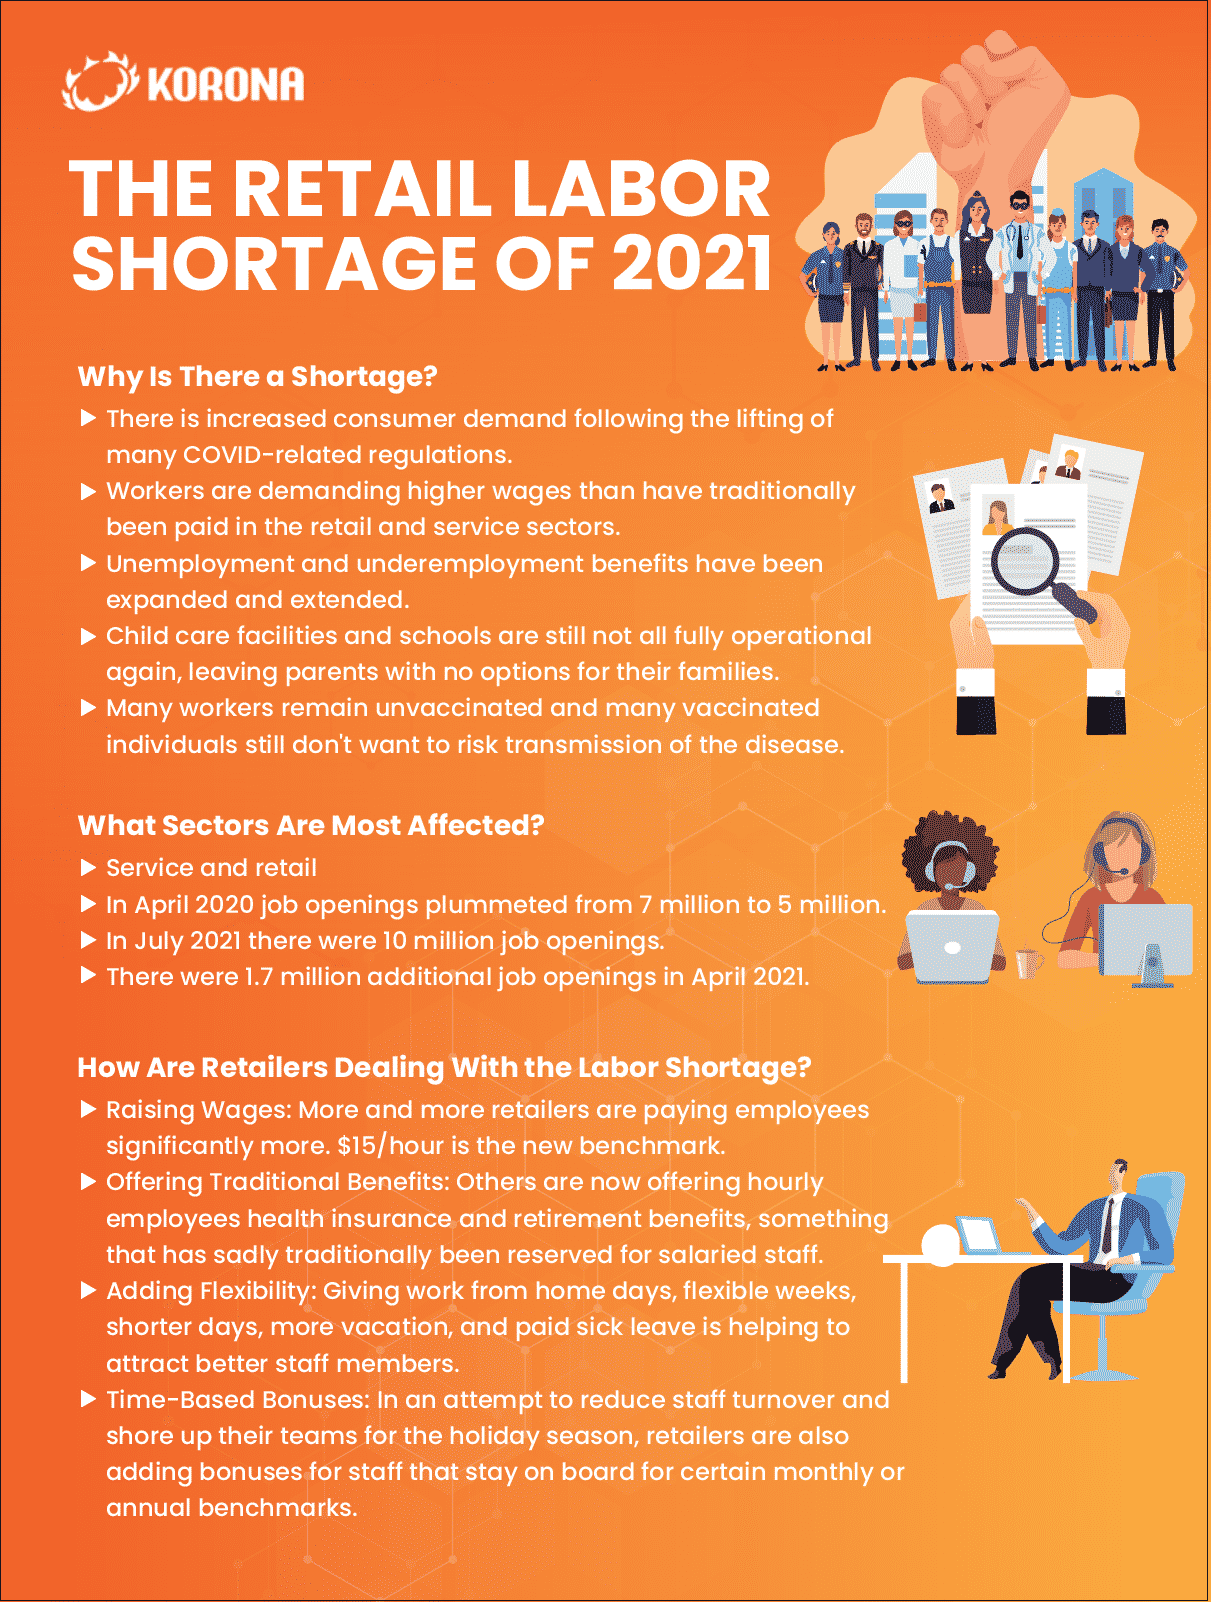 Image showing the reasons for the retail labor shortage of 2021, the industries that it's most affecting, and how business owners can help recruit new employees